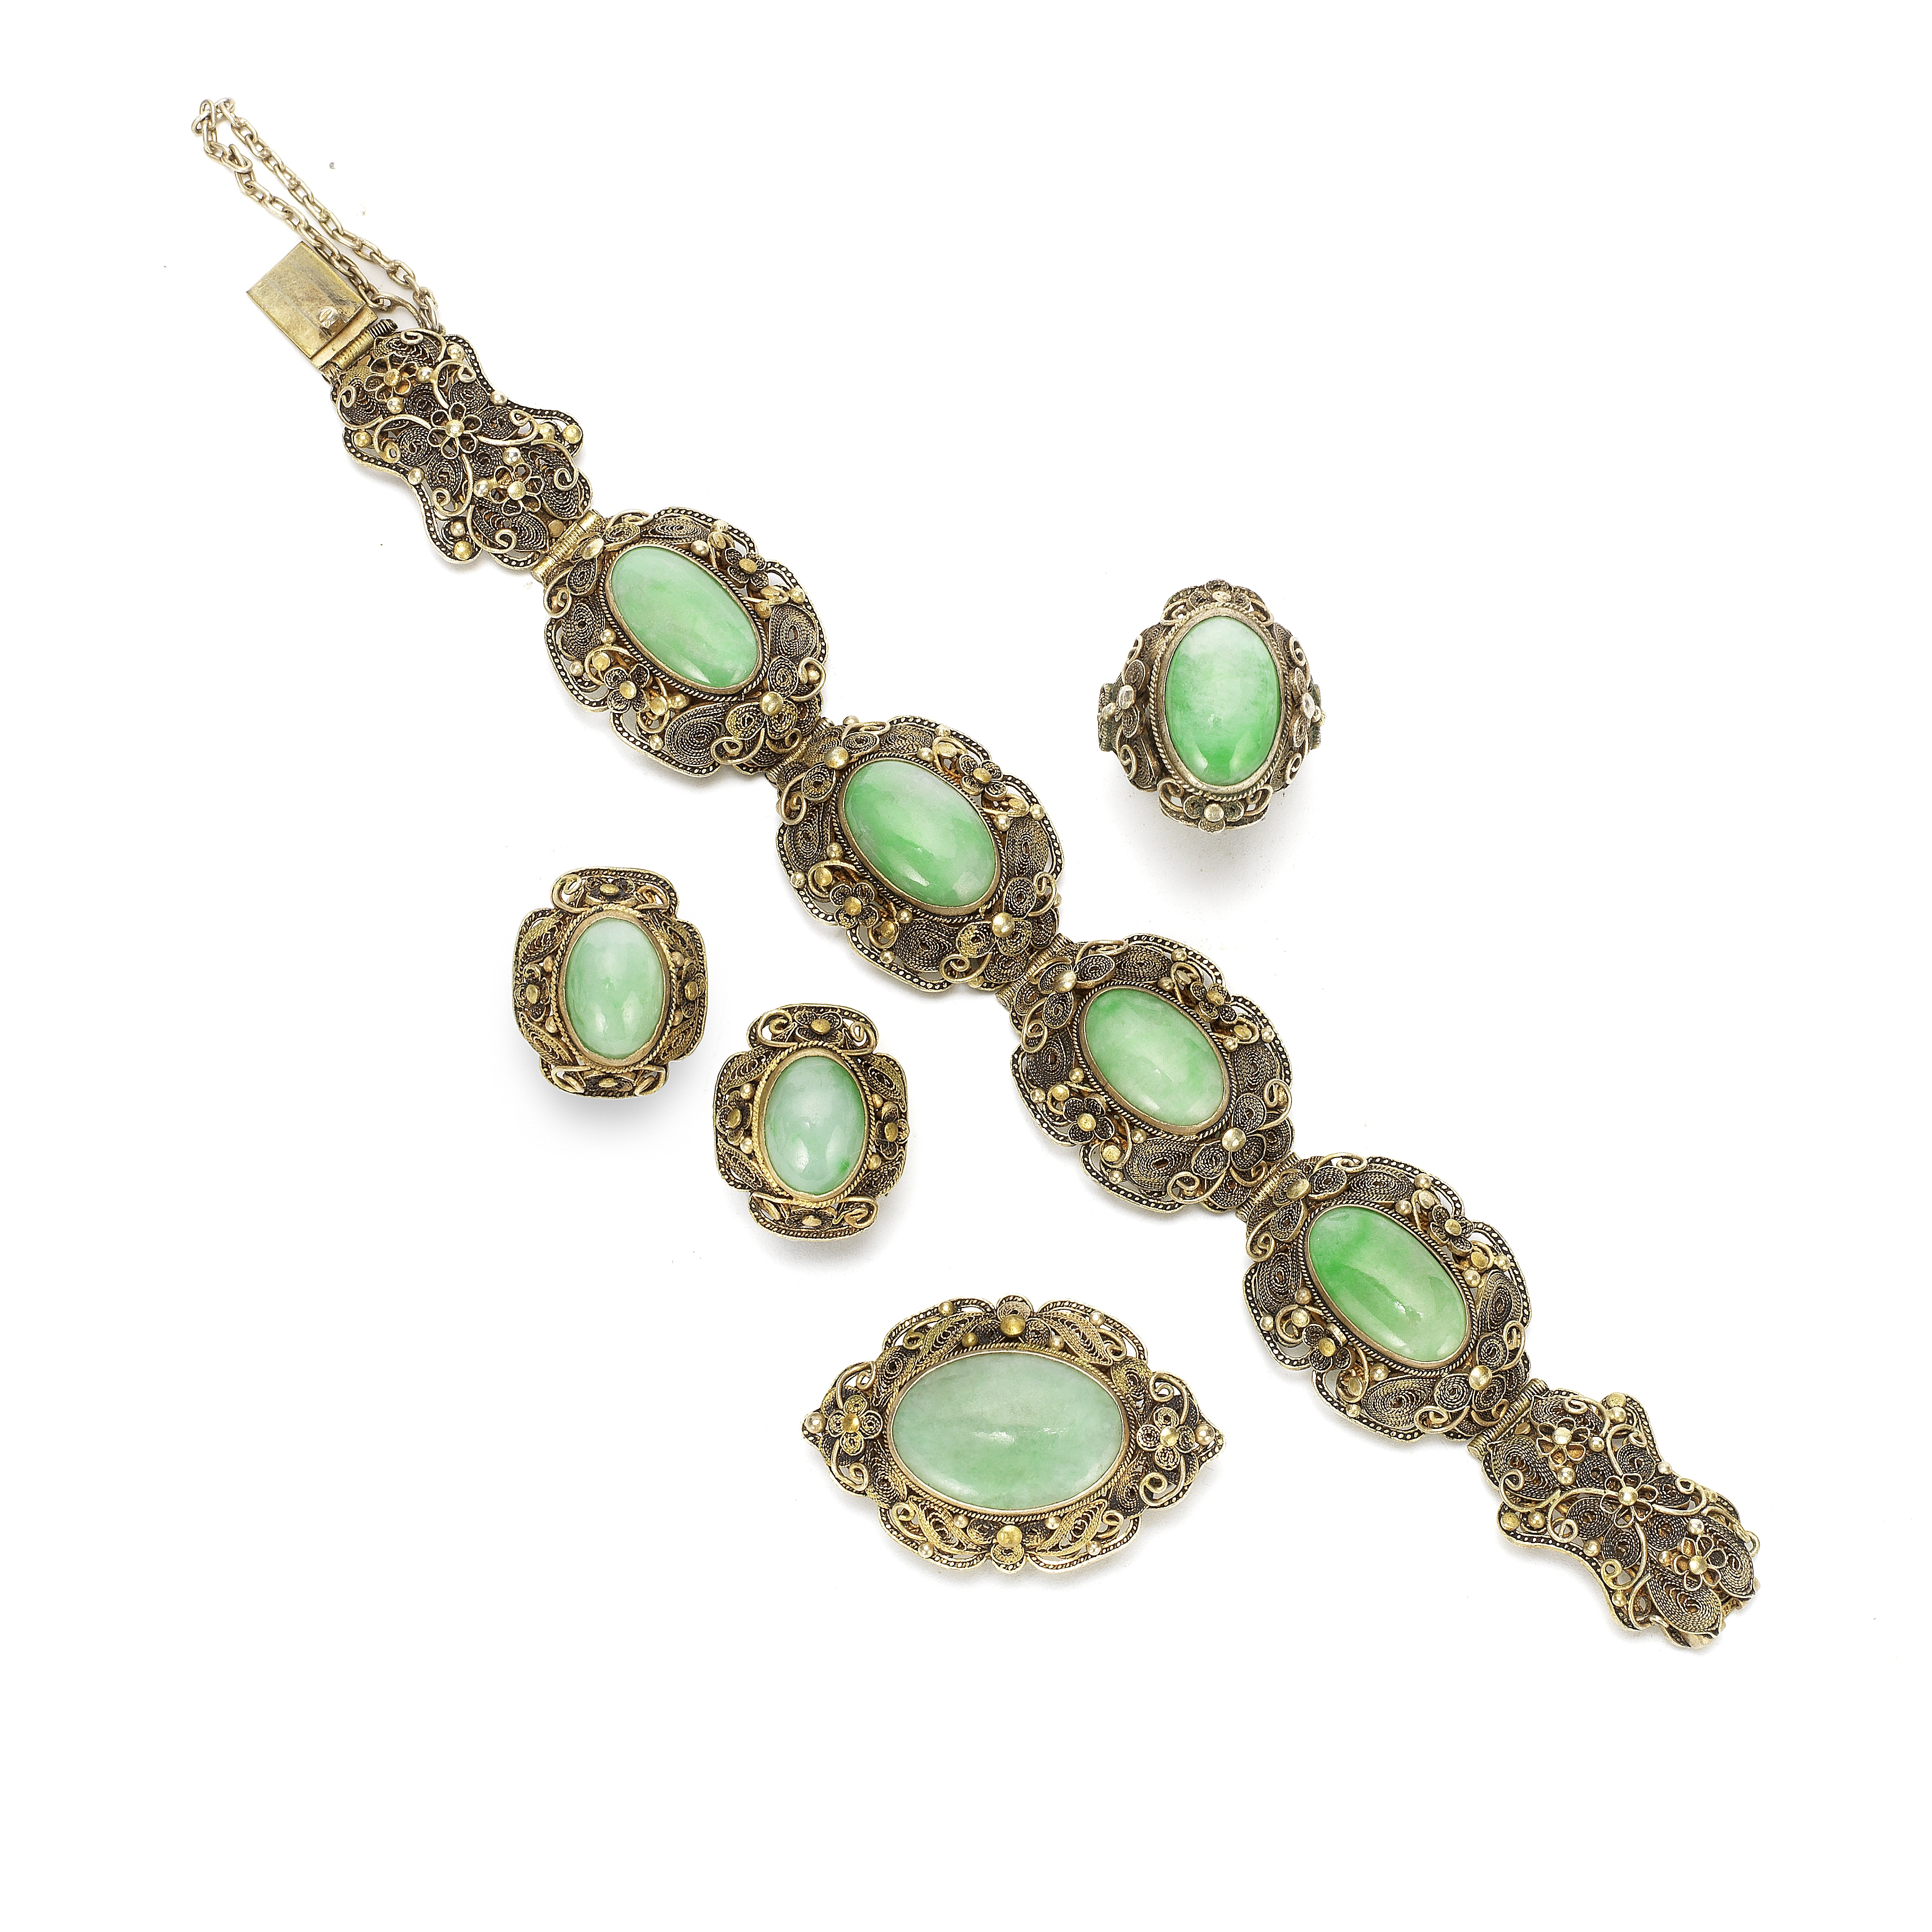 A JADEITE-INSET GILT-FILIGREE BRACELET, EARINGS, RING AND BROOCH SUITE Early 20th century (5)